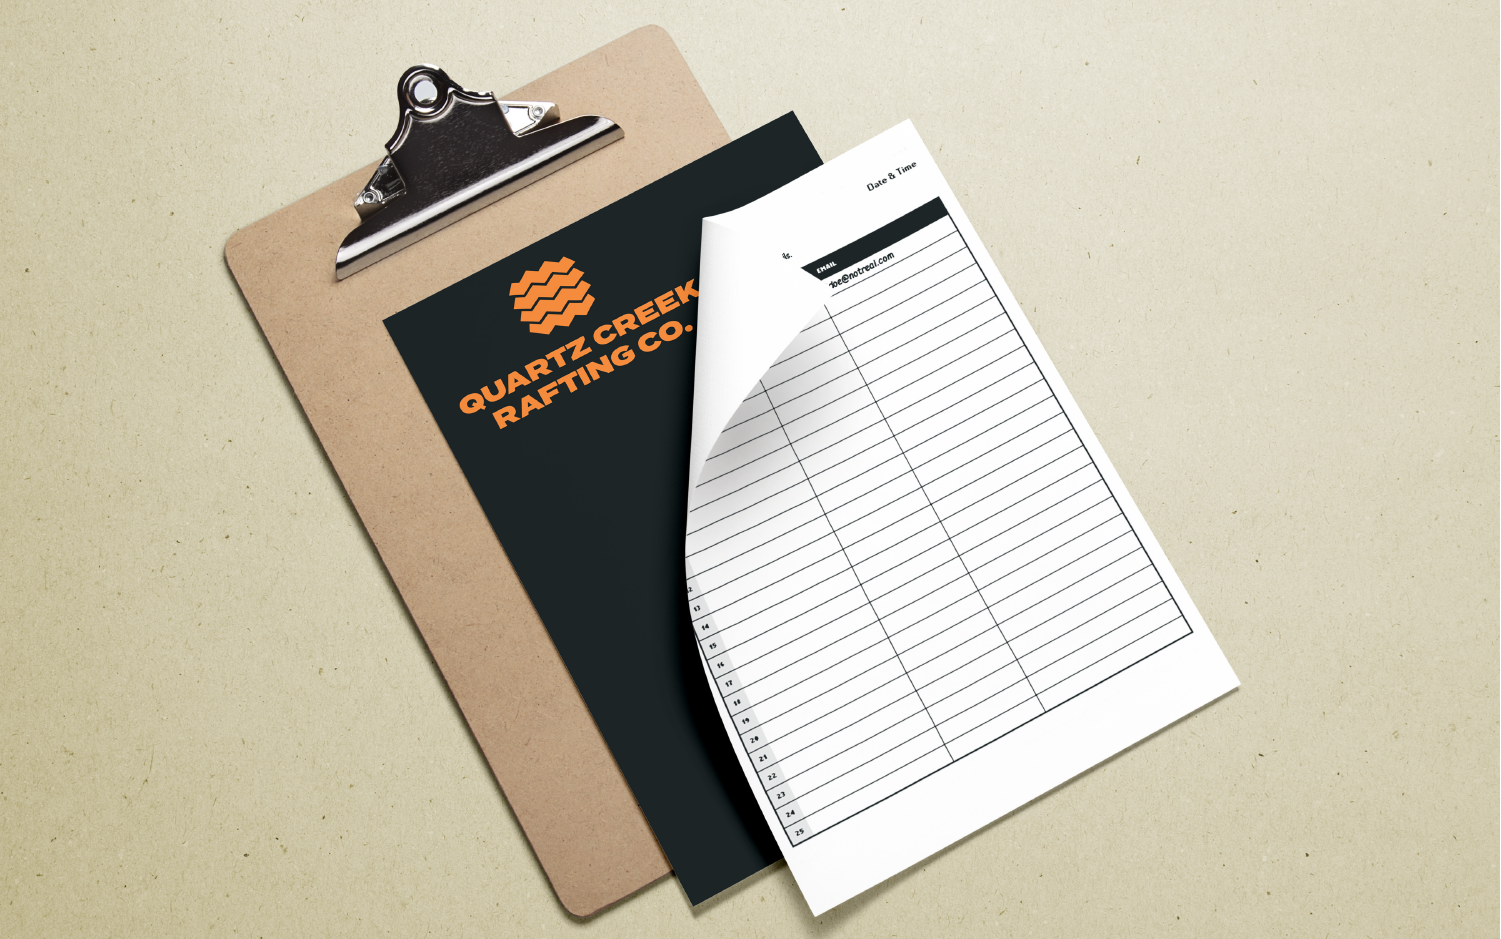 Clipboard mockup design for rafting tour company